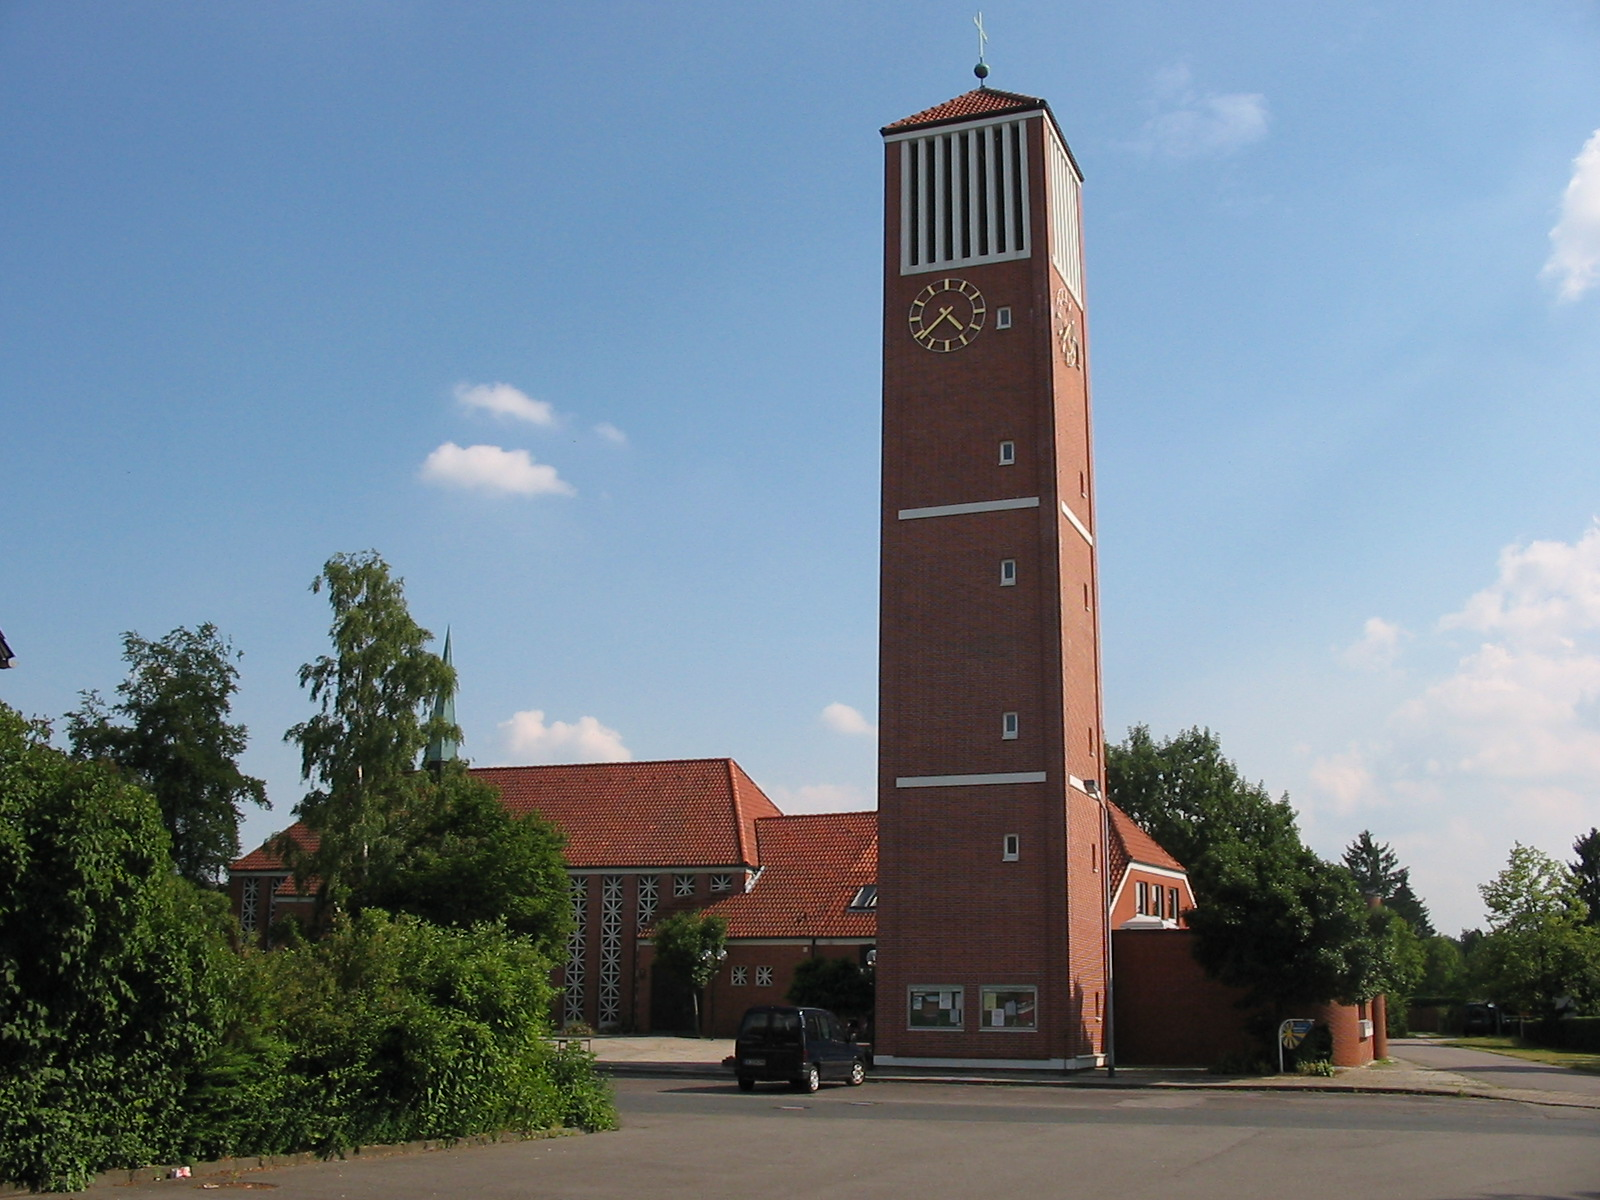 Christuskirche in Westercelle